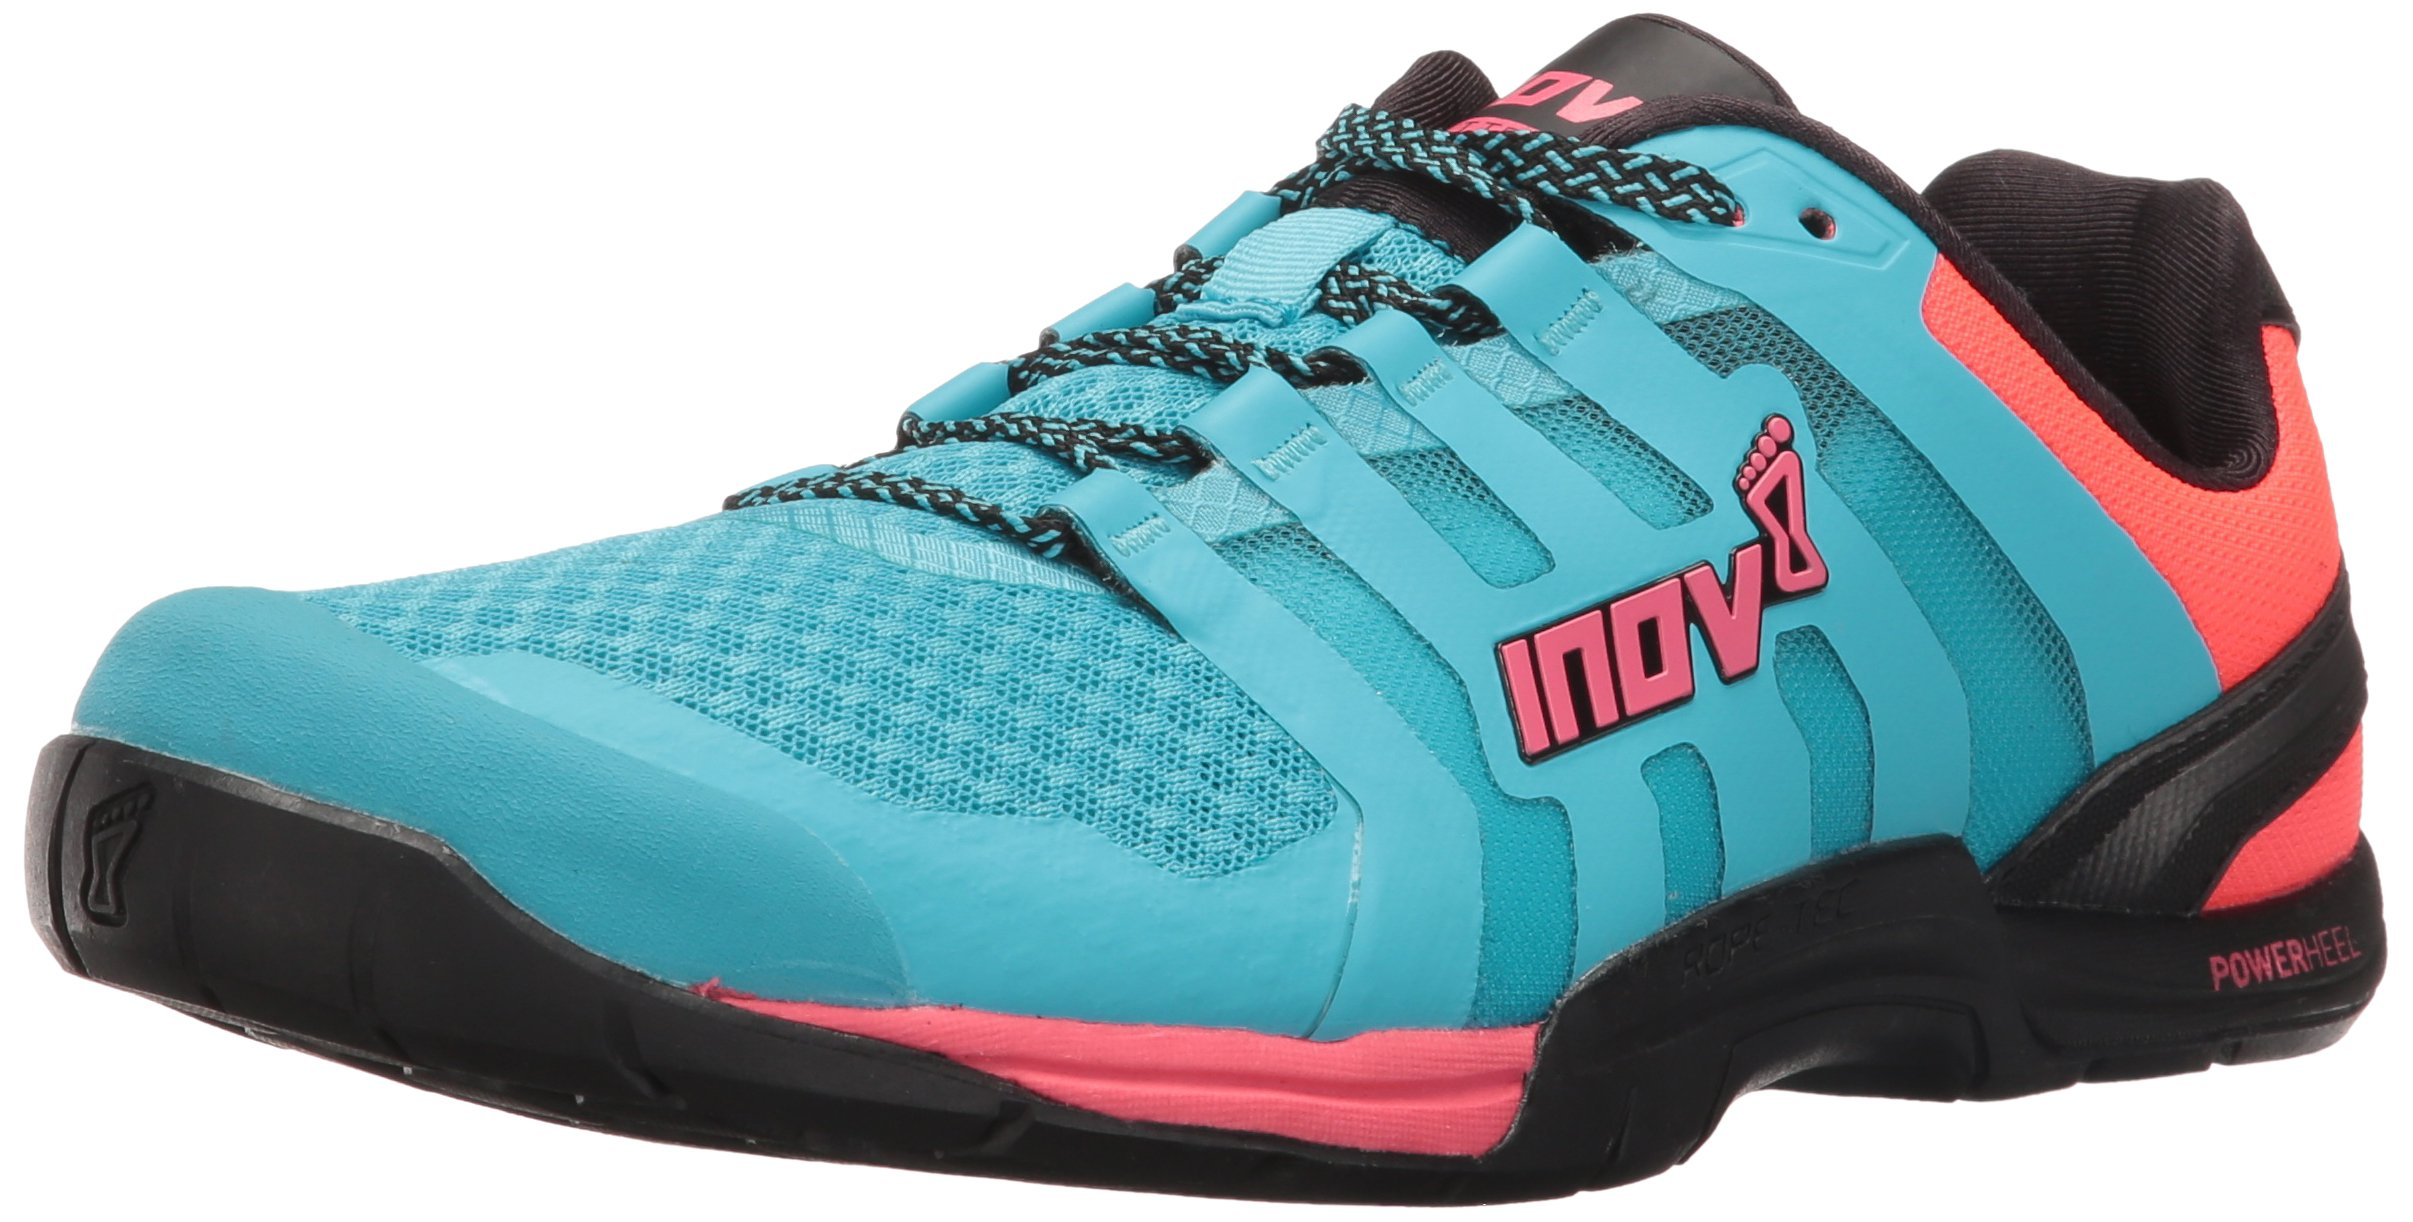 Inov-8 Women's F-LITE 235 V2 Cross-Trainer Shoe, Blue/Black/Neon Pink, 6 E US by Inov-8